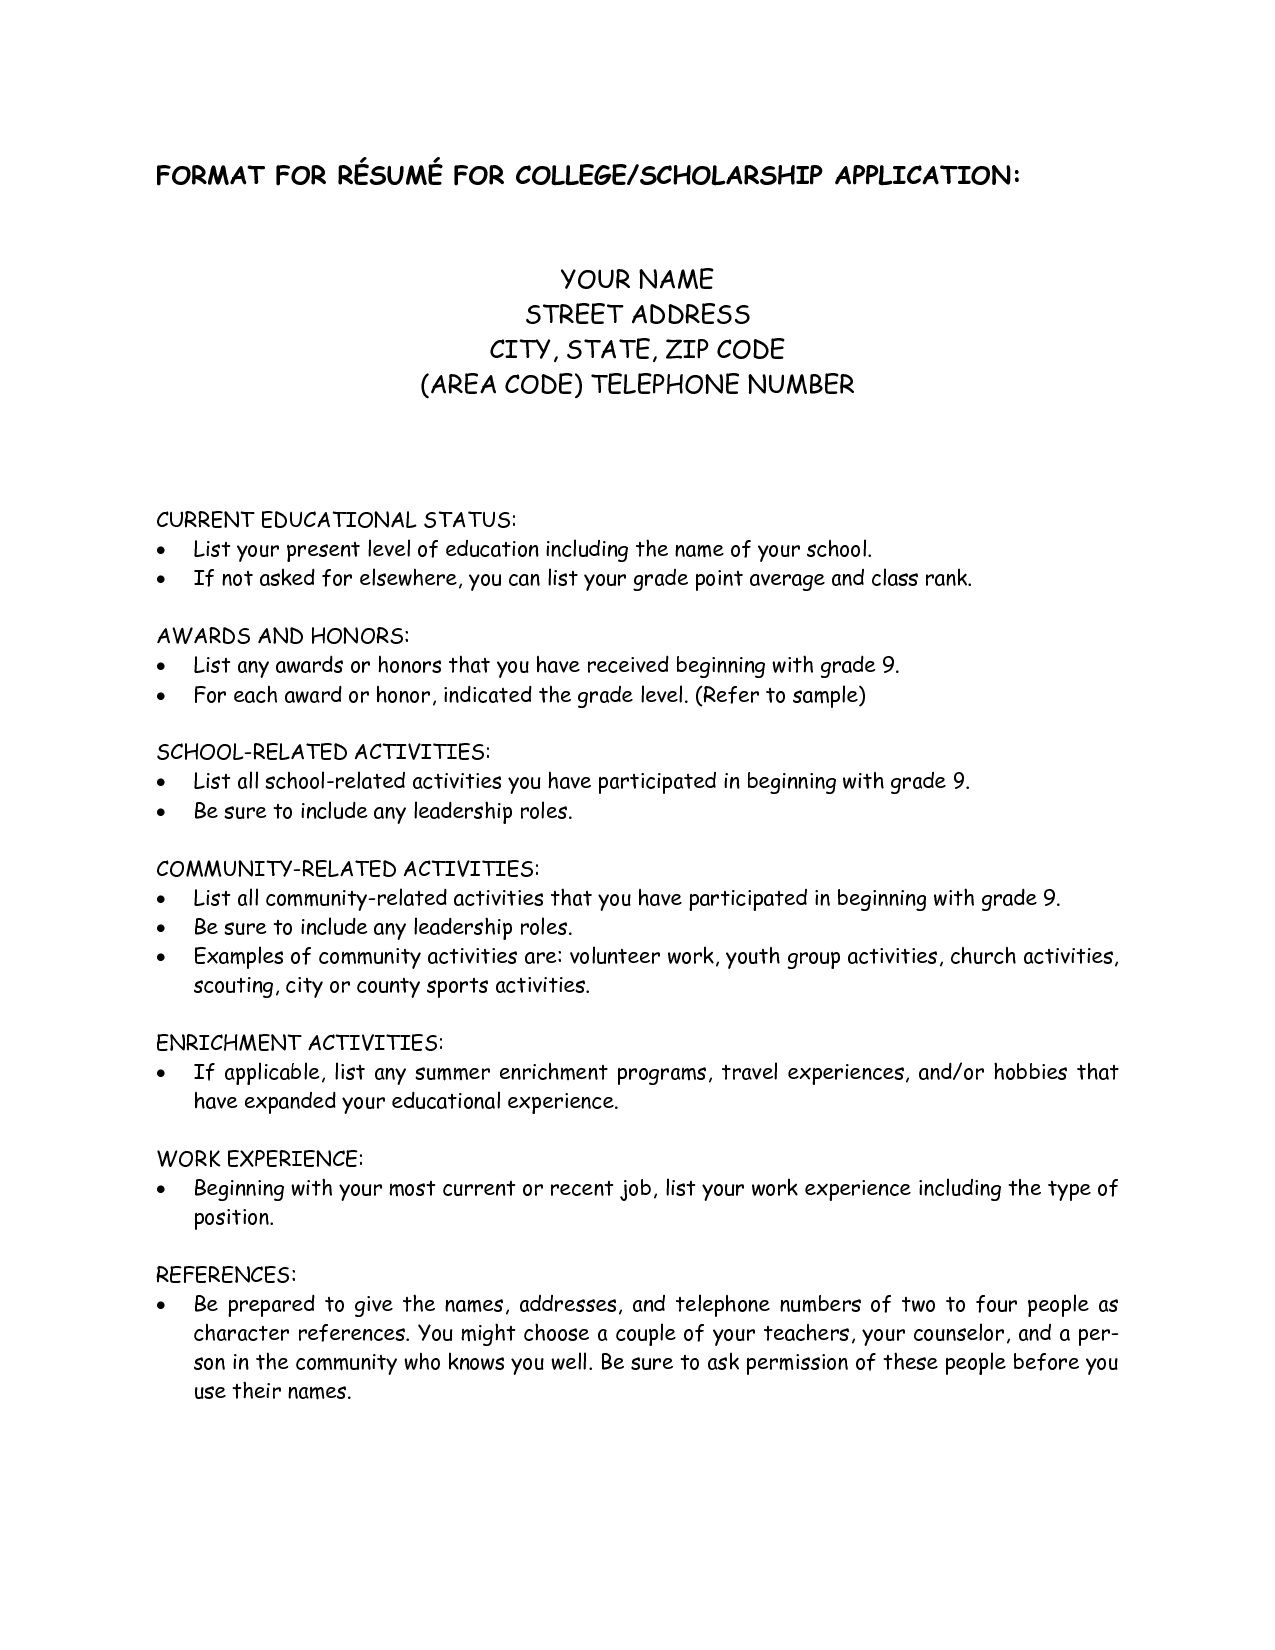 Resume Format Application Pin By Topresumes On Latest Resume Pinterest Resume